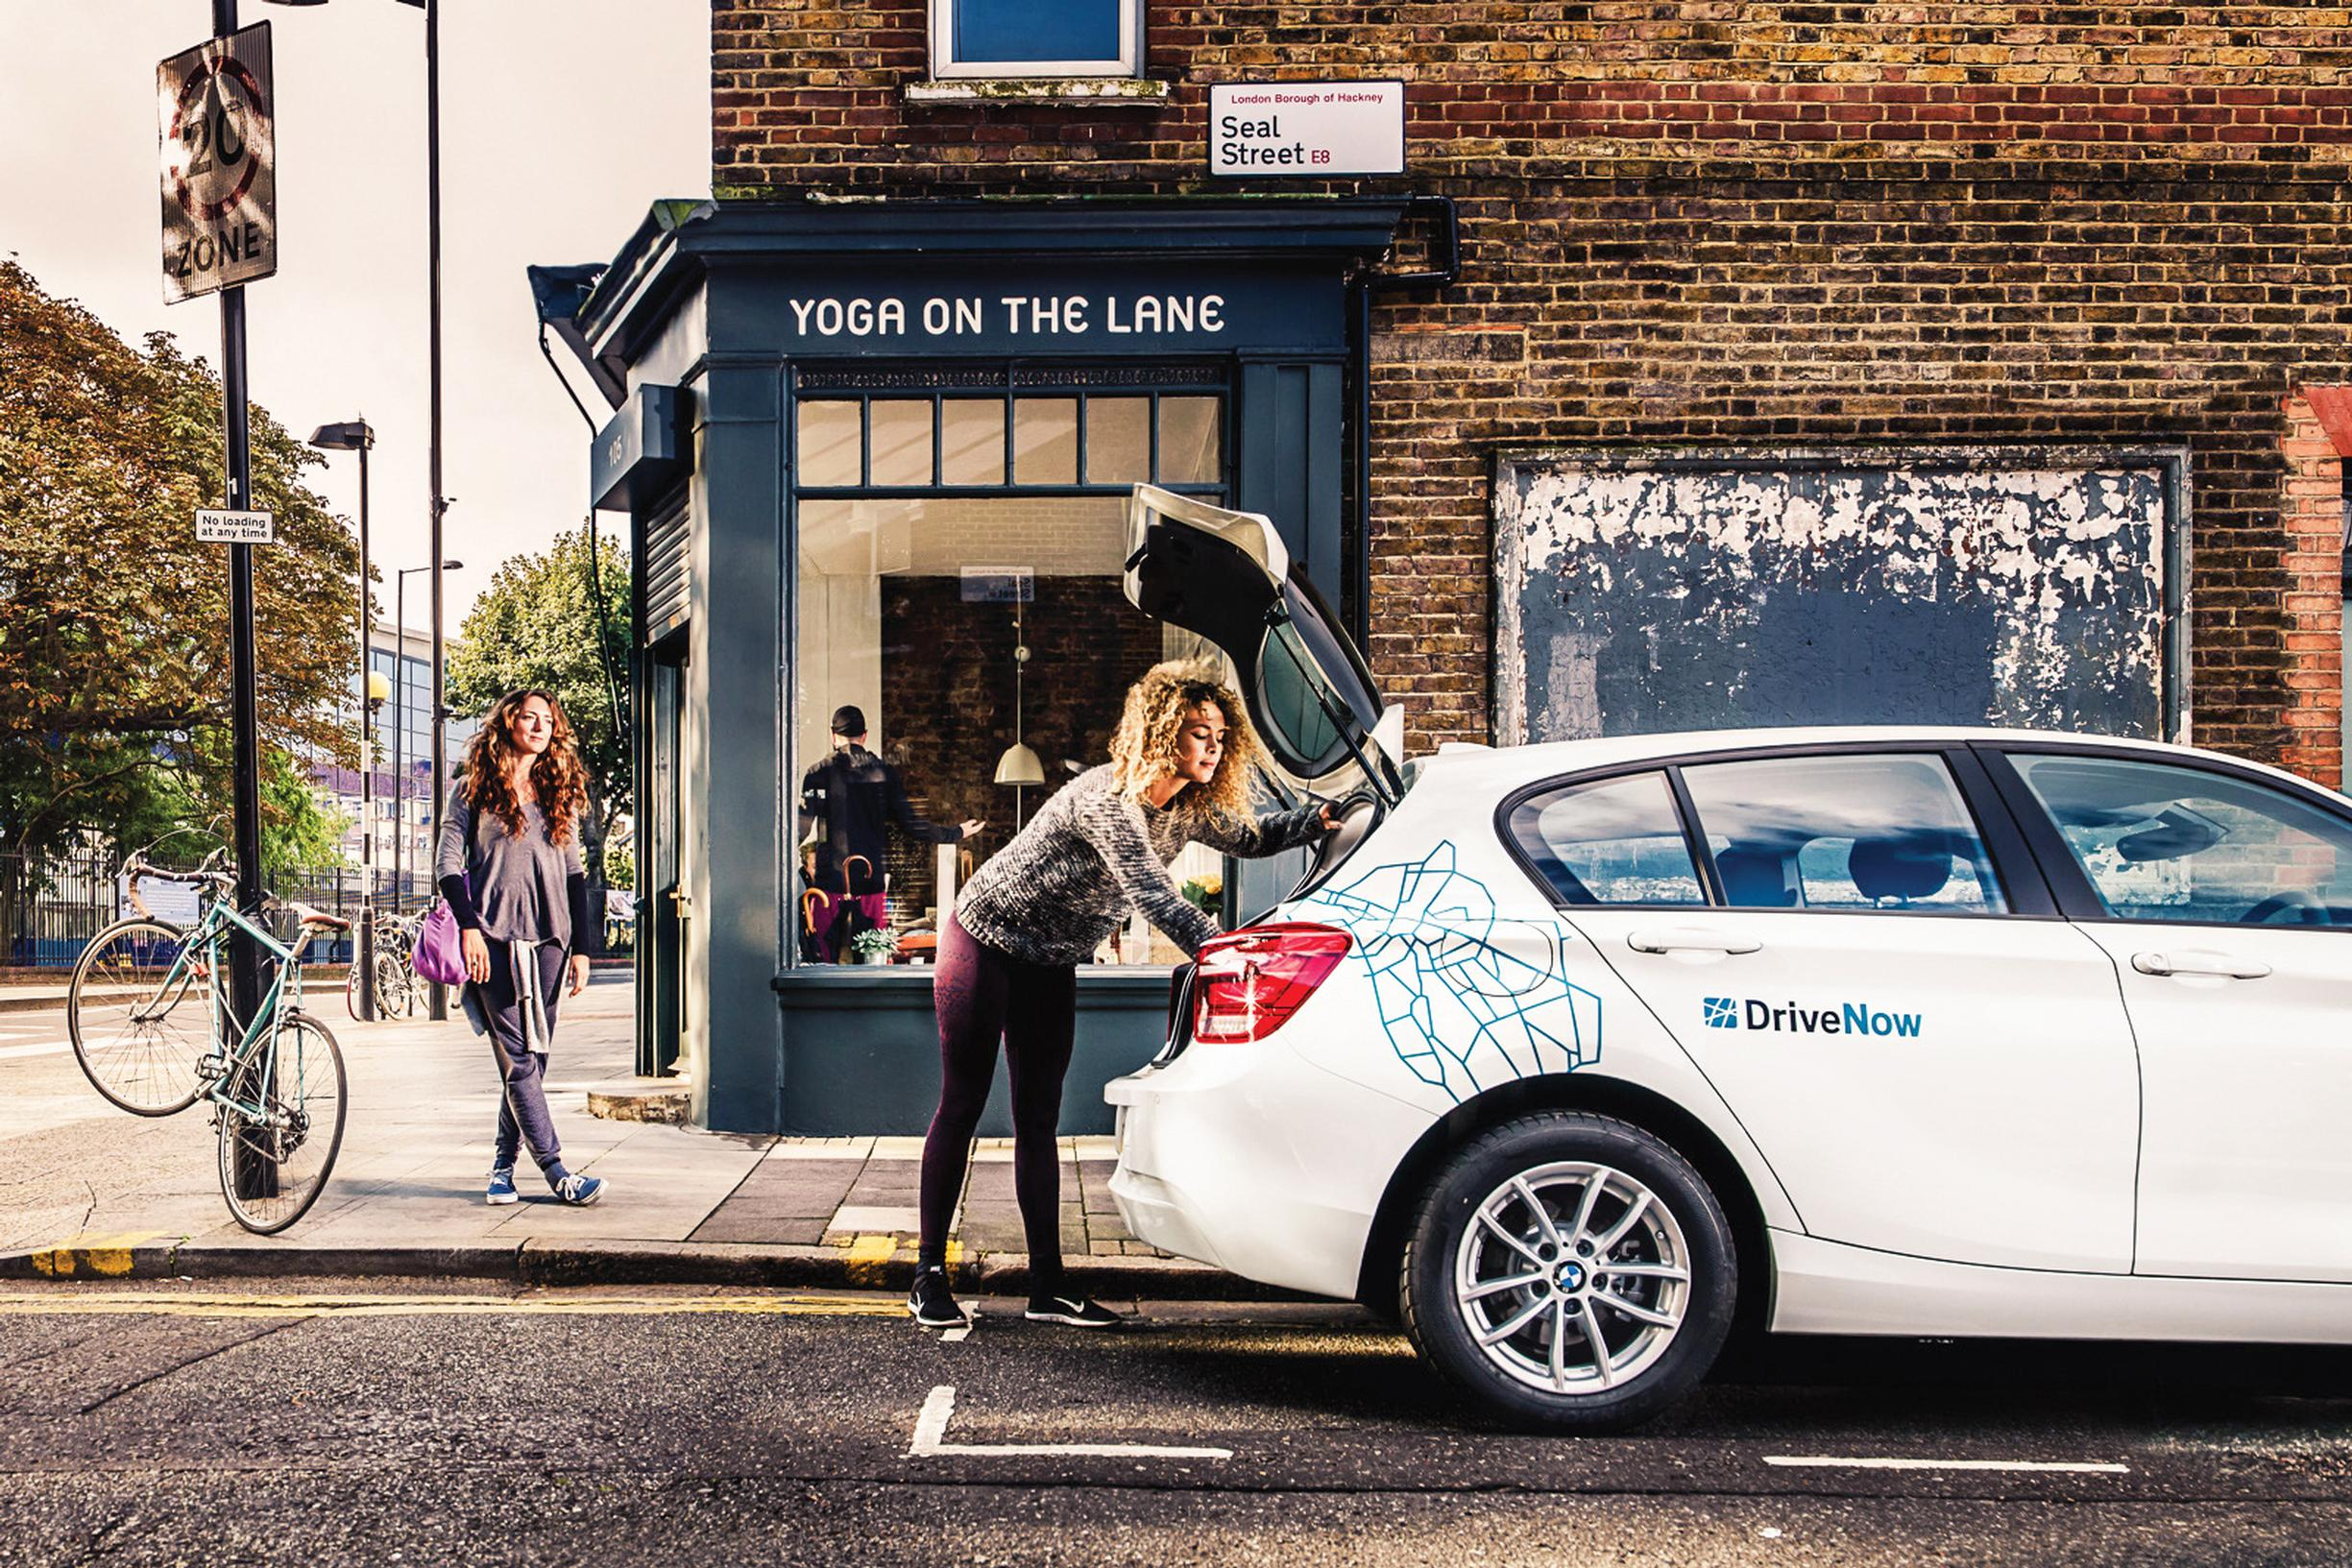 DriveNow has failed to attract enough members